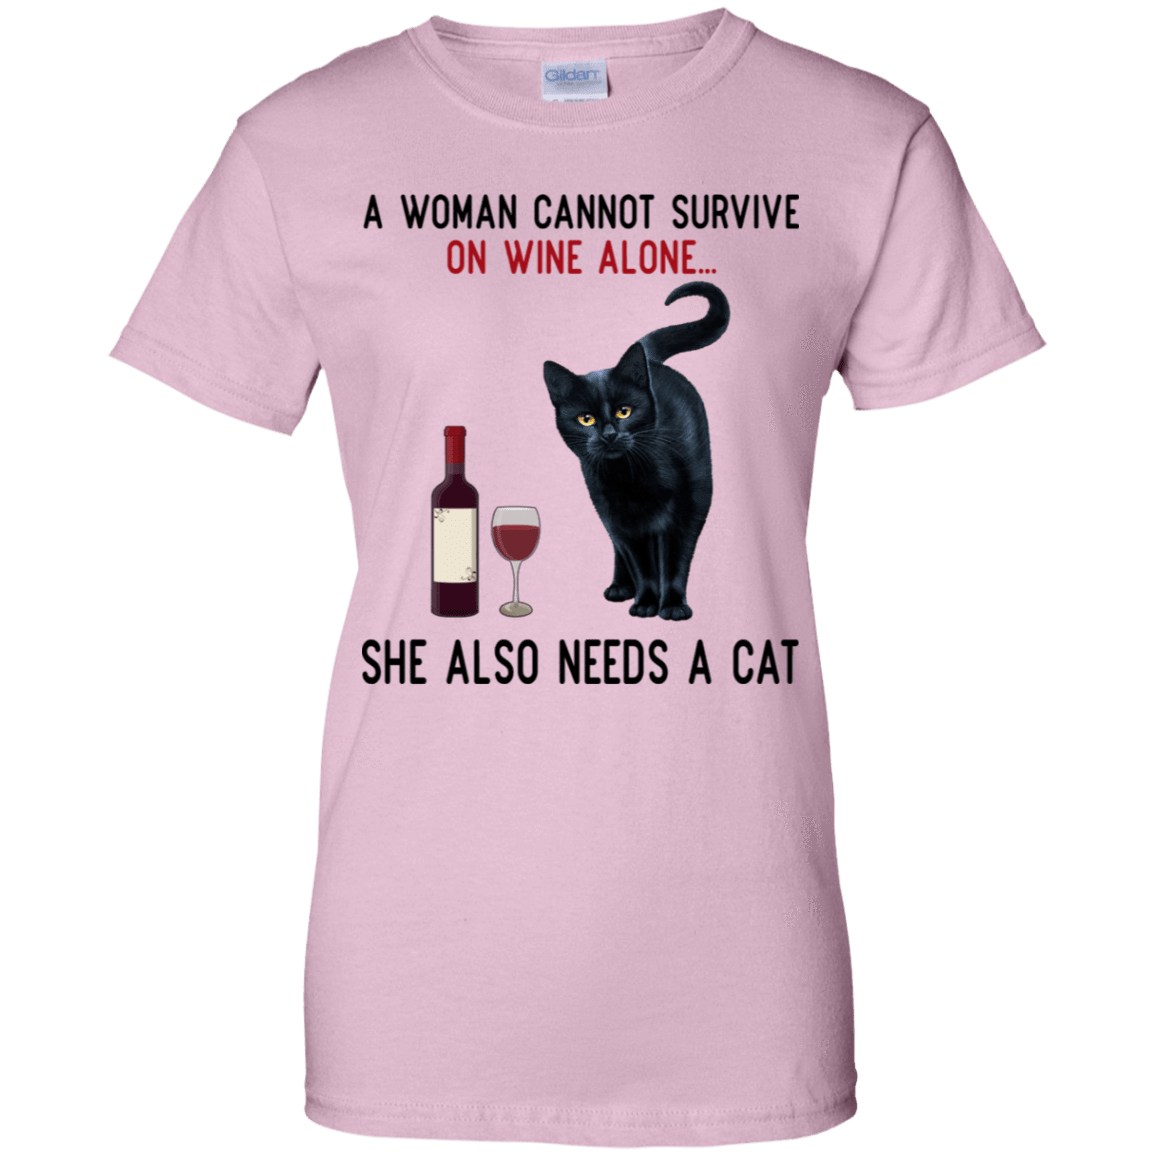 A Woman Cannot Survive On Wine Alone She Also Need A Cat T-Shirts, Hoodies 939-9258-77528899-44786 - Tee Ript